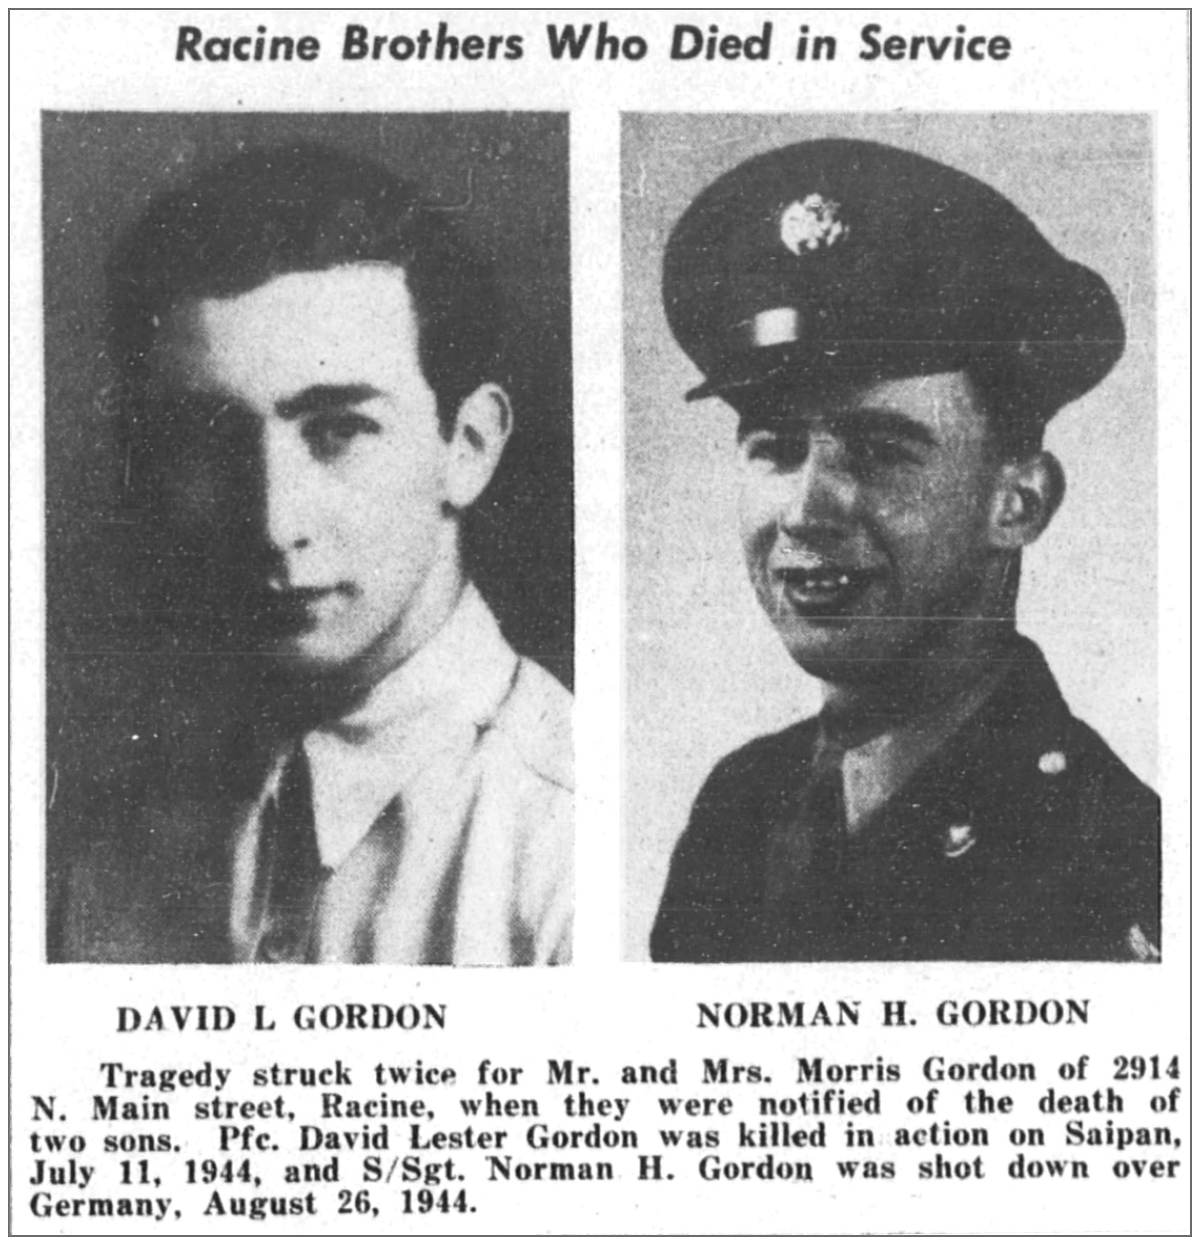 Pfc. David L. Gordon and his brother S/Sgt. Norman H. Gordon